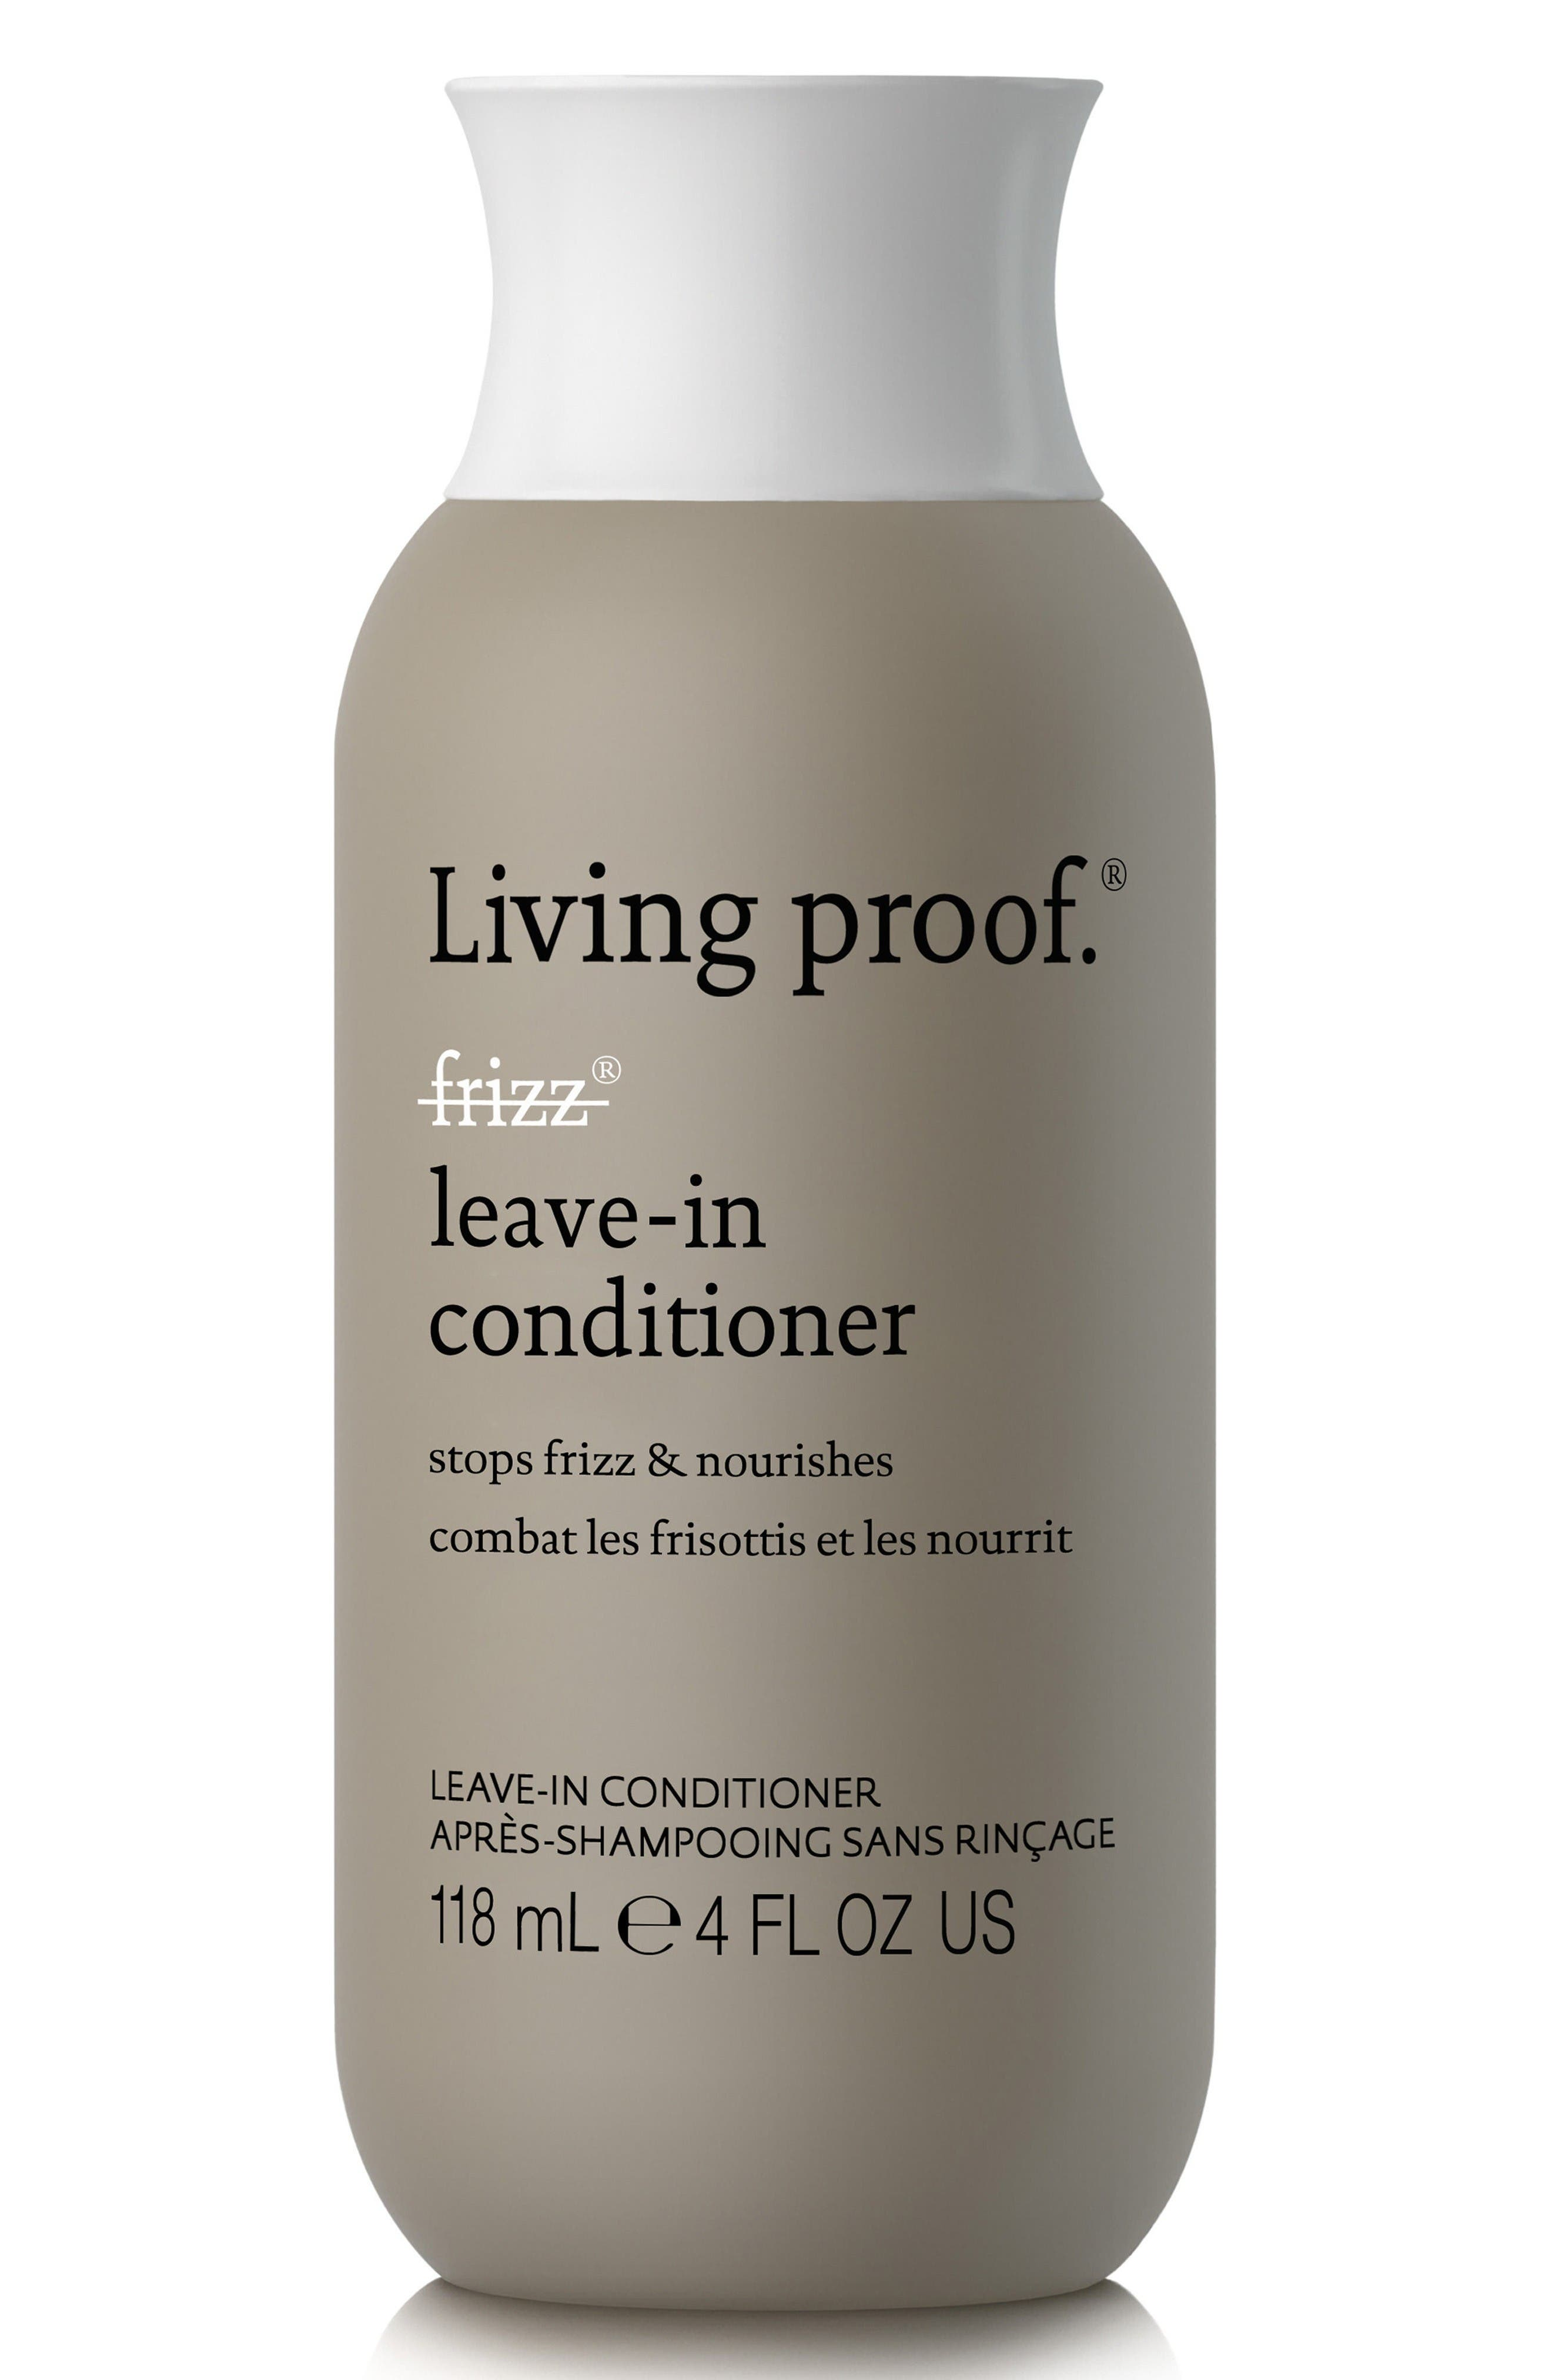 Alternate Image 1 Selected - Living proof® No Frizz Moisture Restoring Leave-In Conditioner